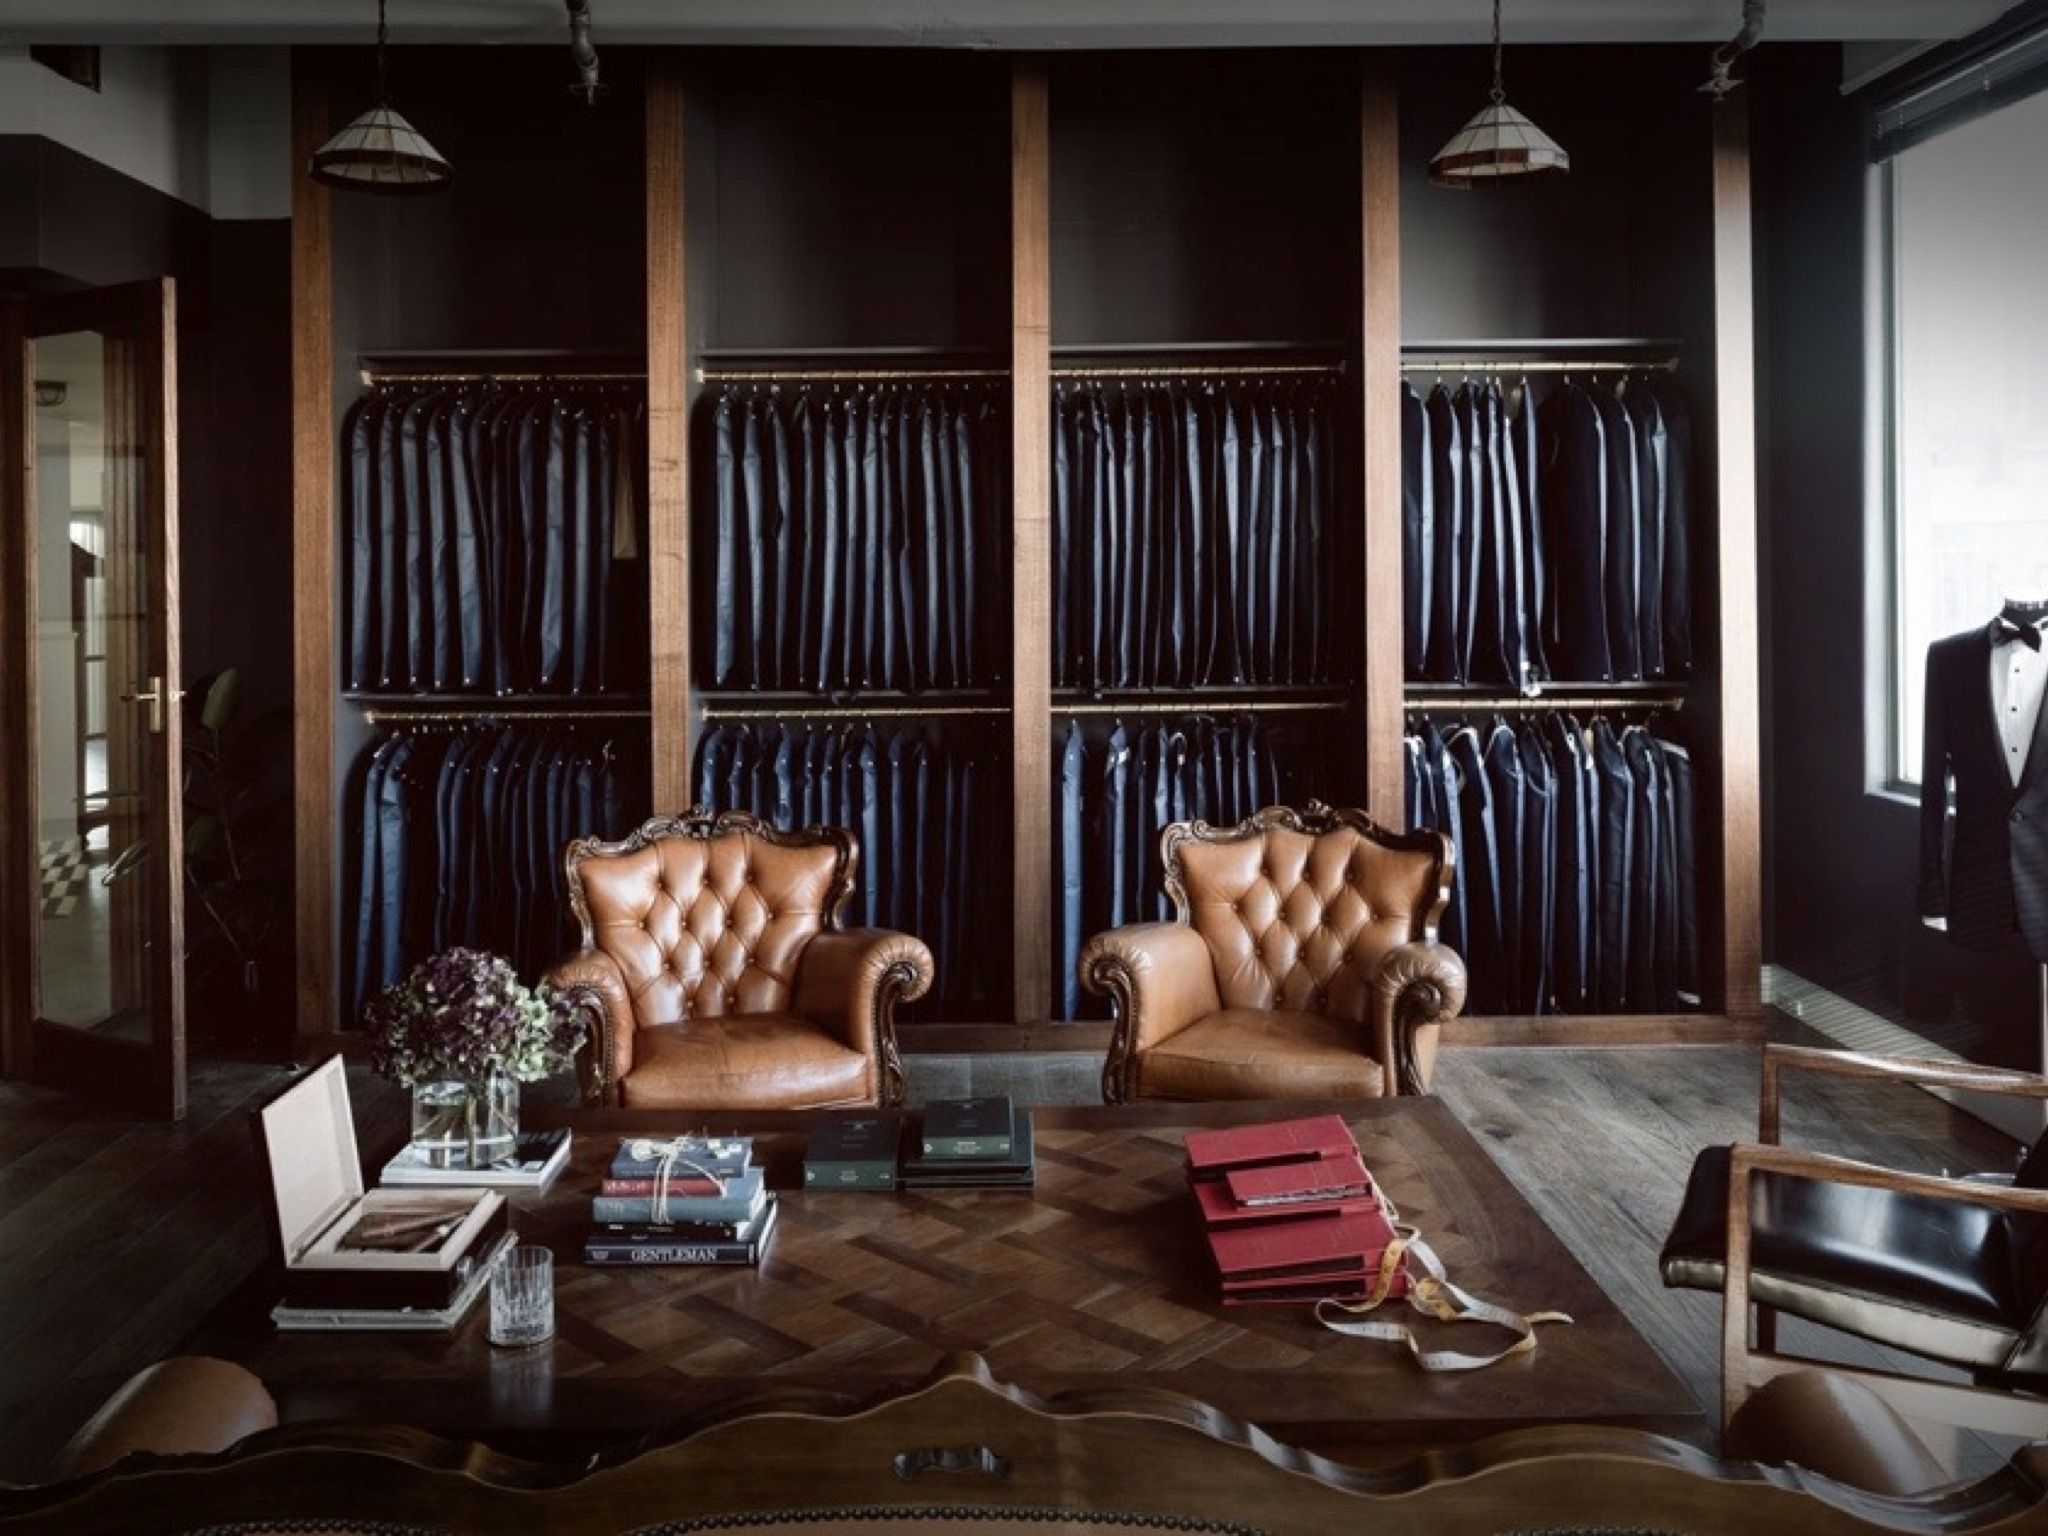 The best tailors in Sydney